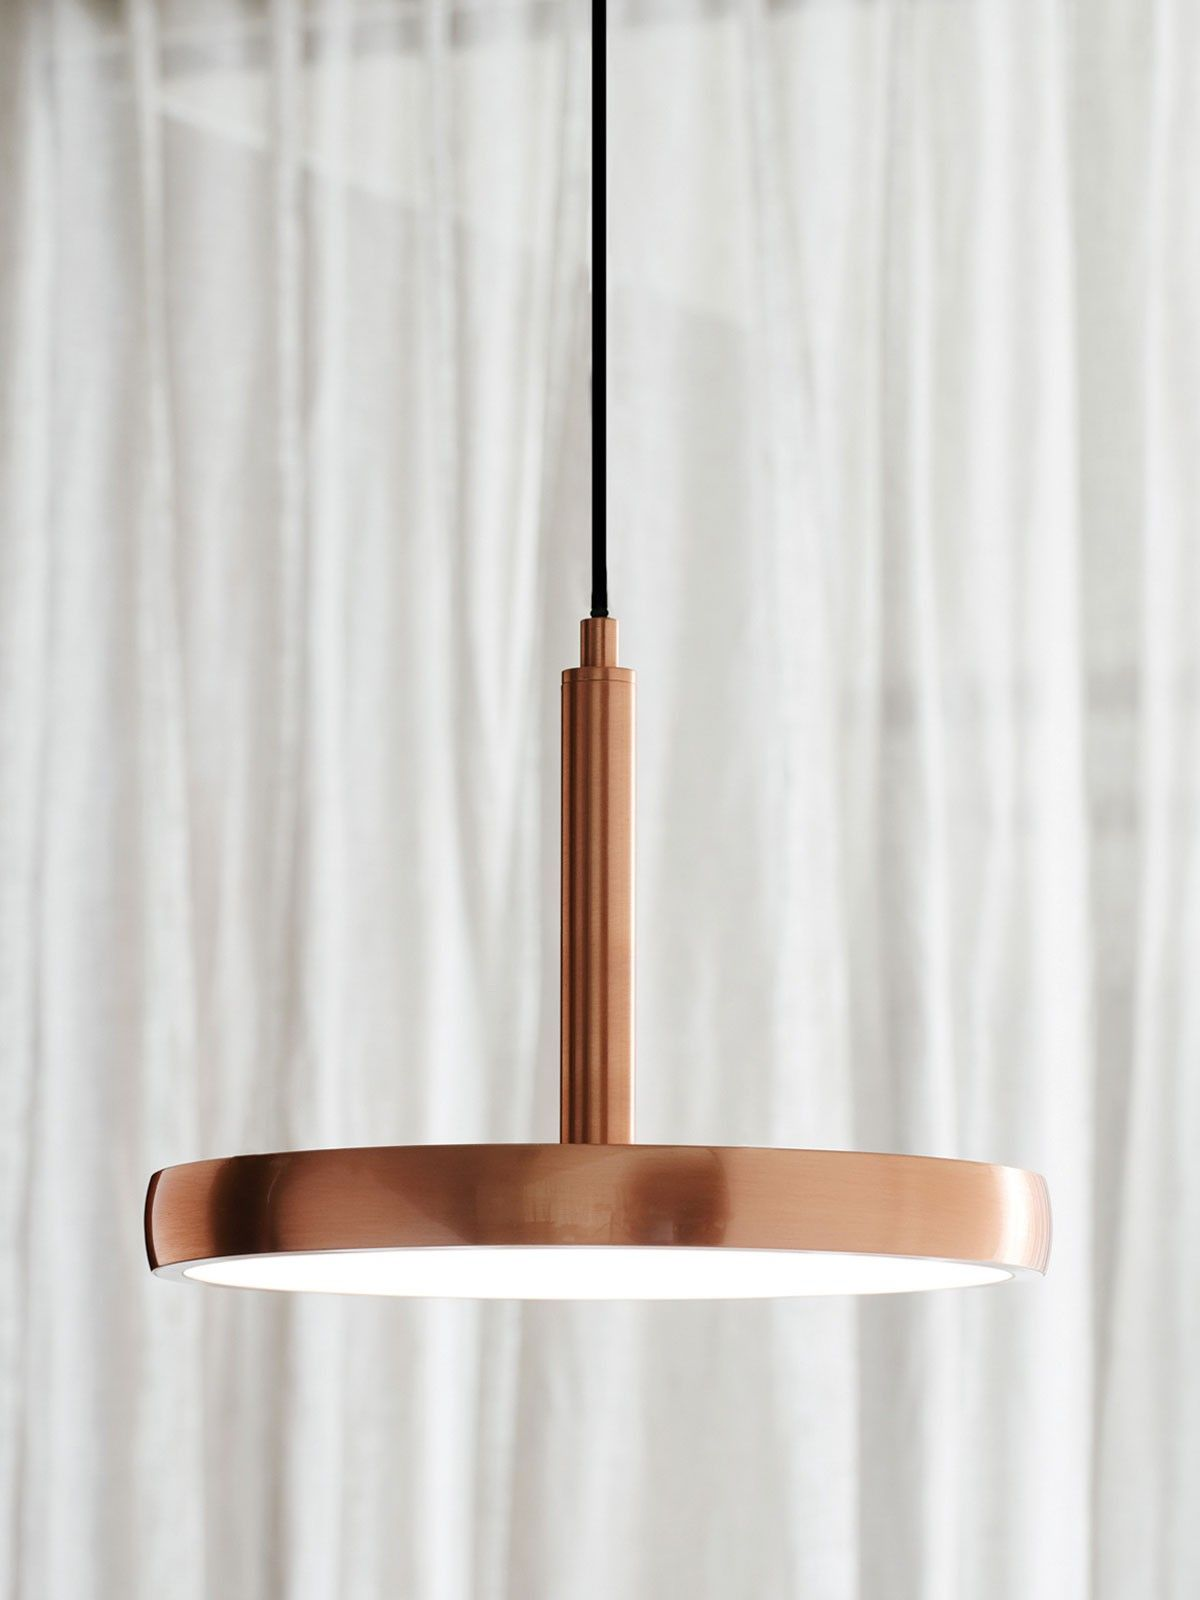 Ledlux bennett 300mm dimmable led pendant in copper finish modern ledlux bennett 300mm dimmable led pendant in copper finish modern pendants pendant lights arubaitofo Image collections